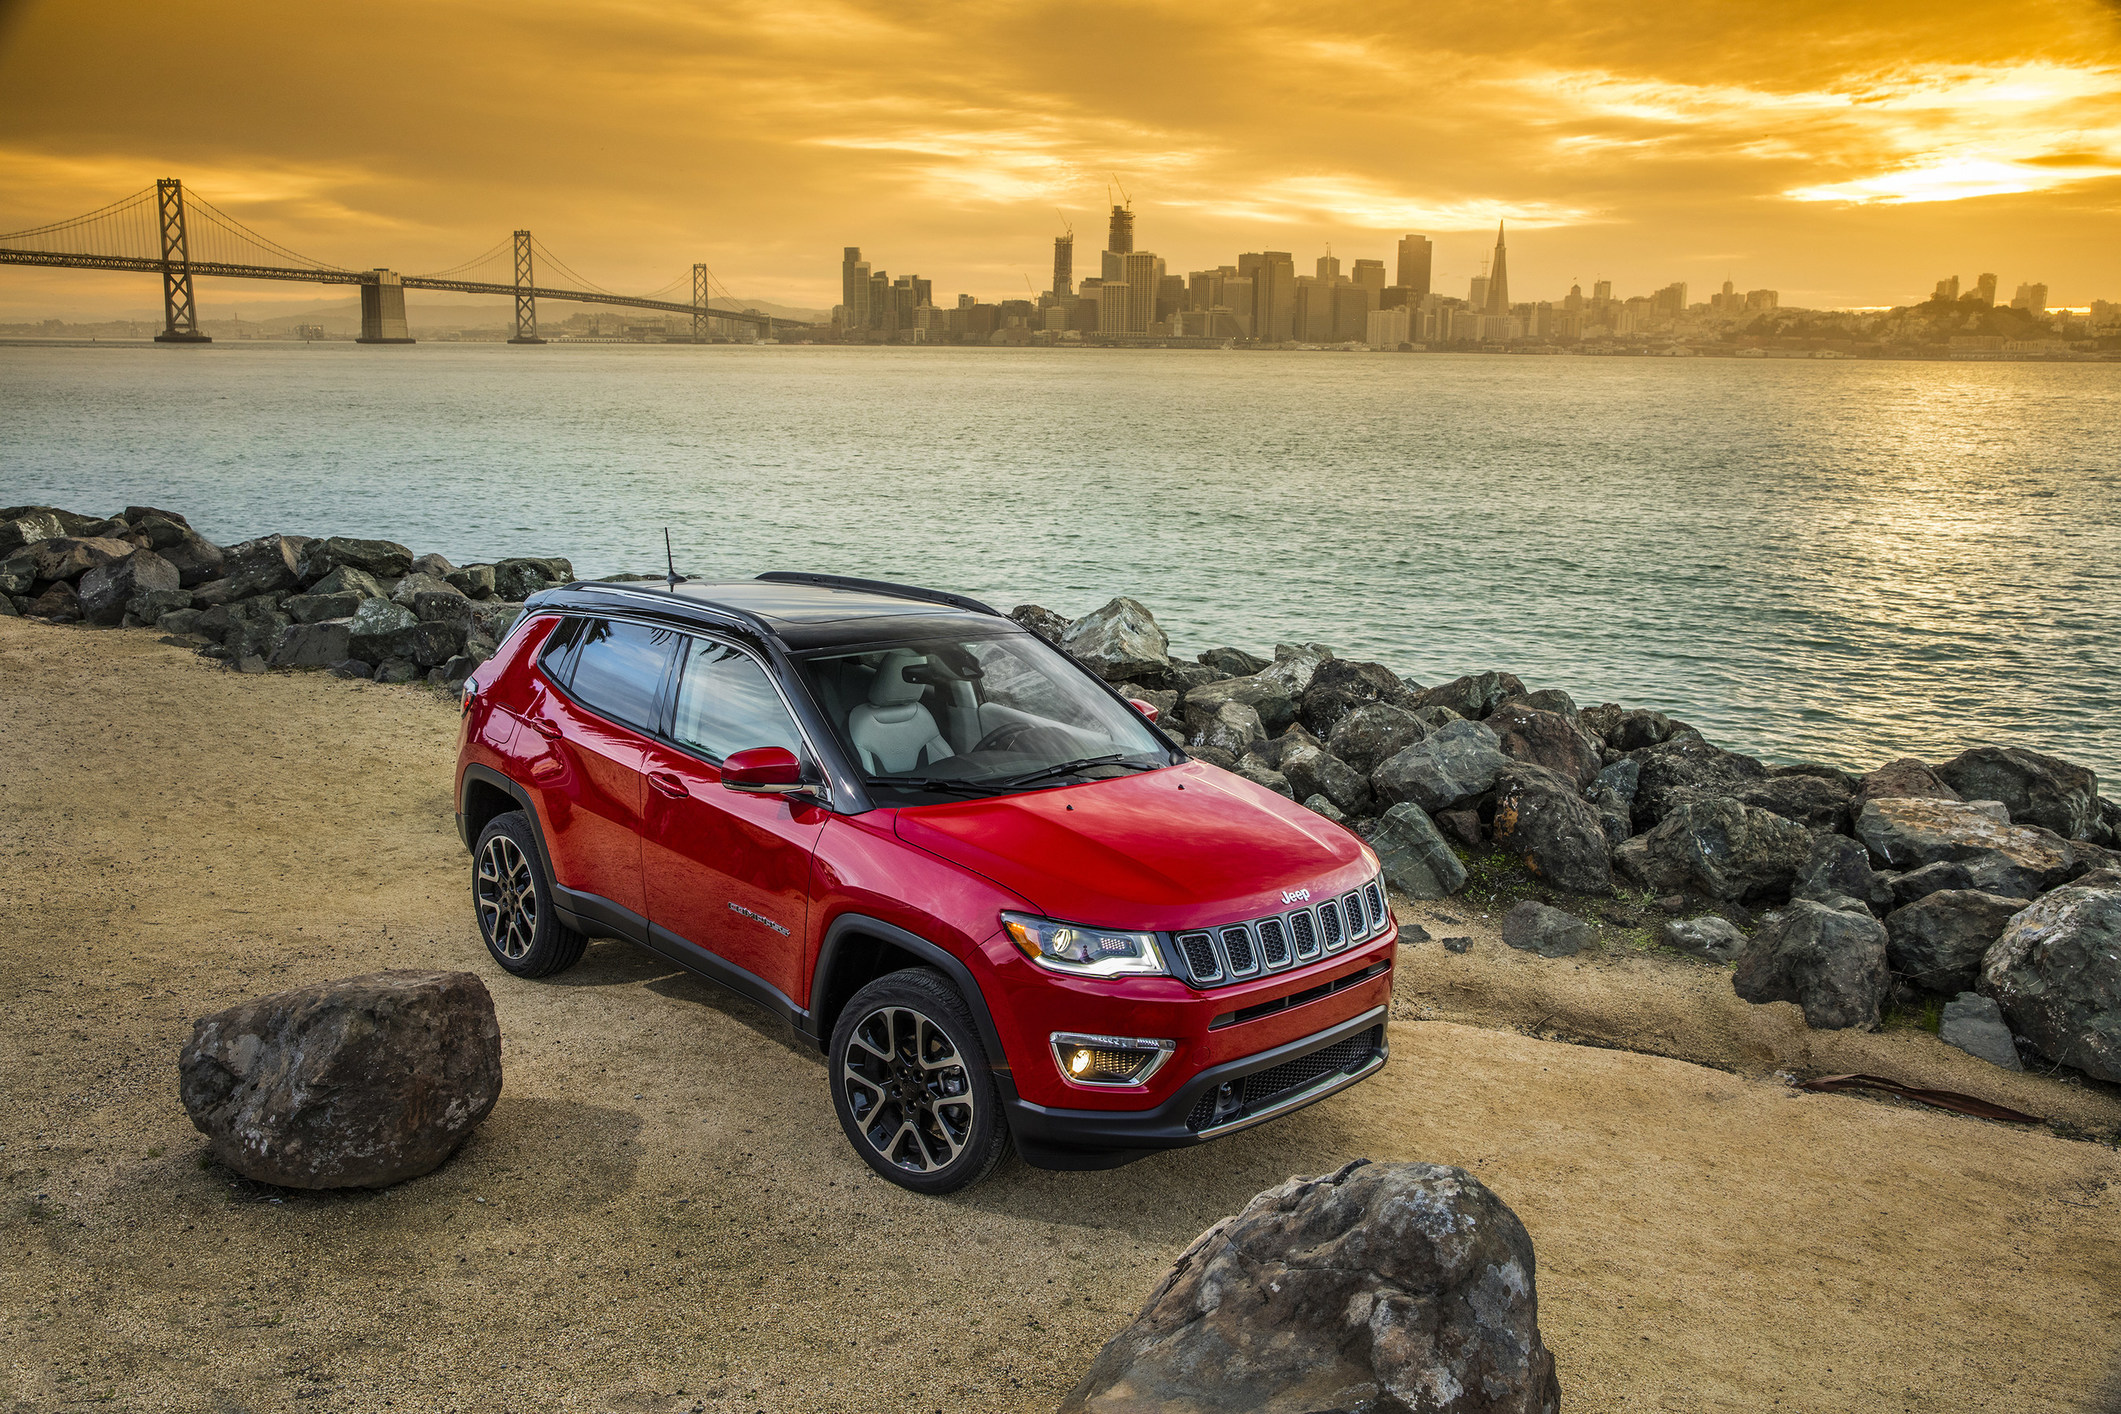 2017 jeep compass an all new global compact suv delivering unsurpassed 4x4 capability. Black Bedroom Furniture Sets. Home Design Ideas